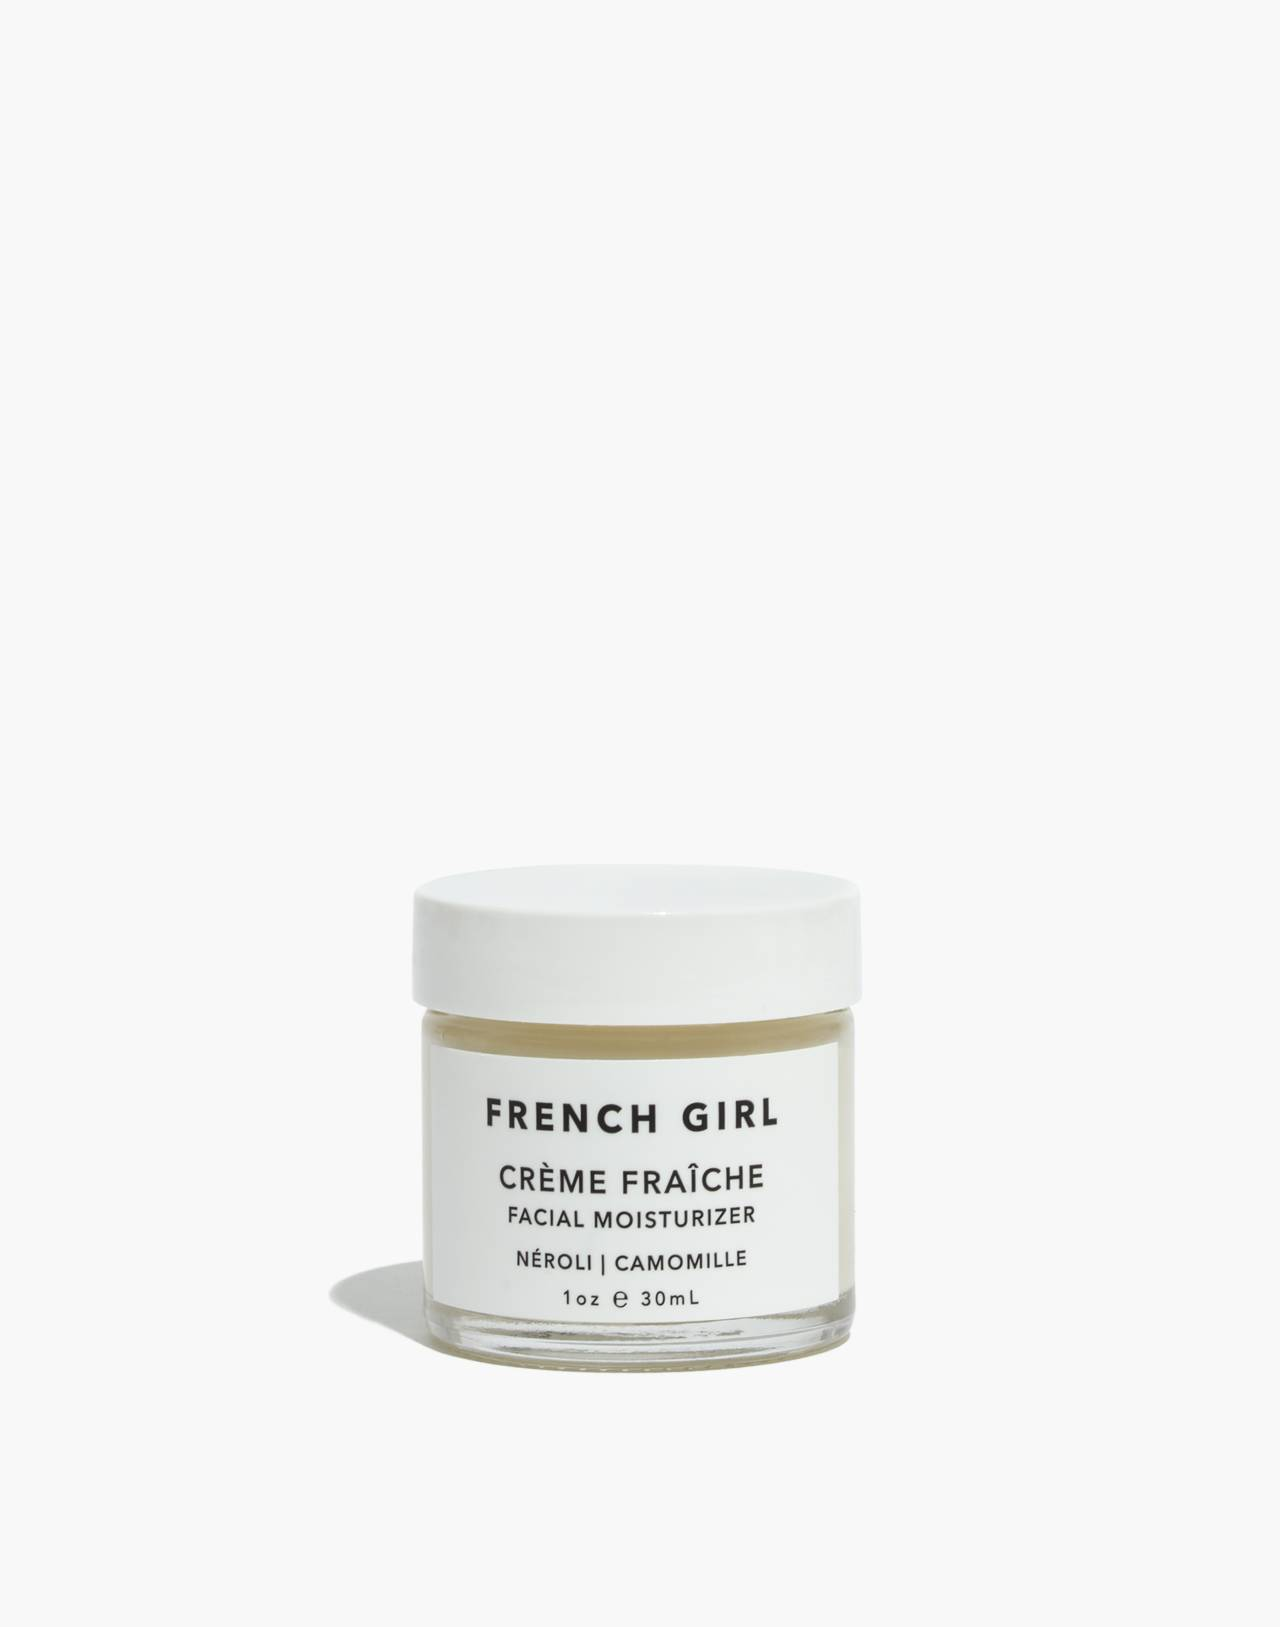 French Girl™ Crème Fra�che Facial Moisturizer in creme fraiche image 1